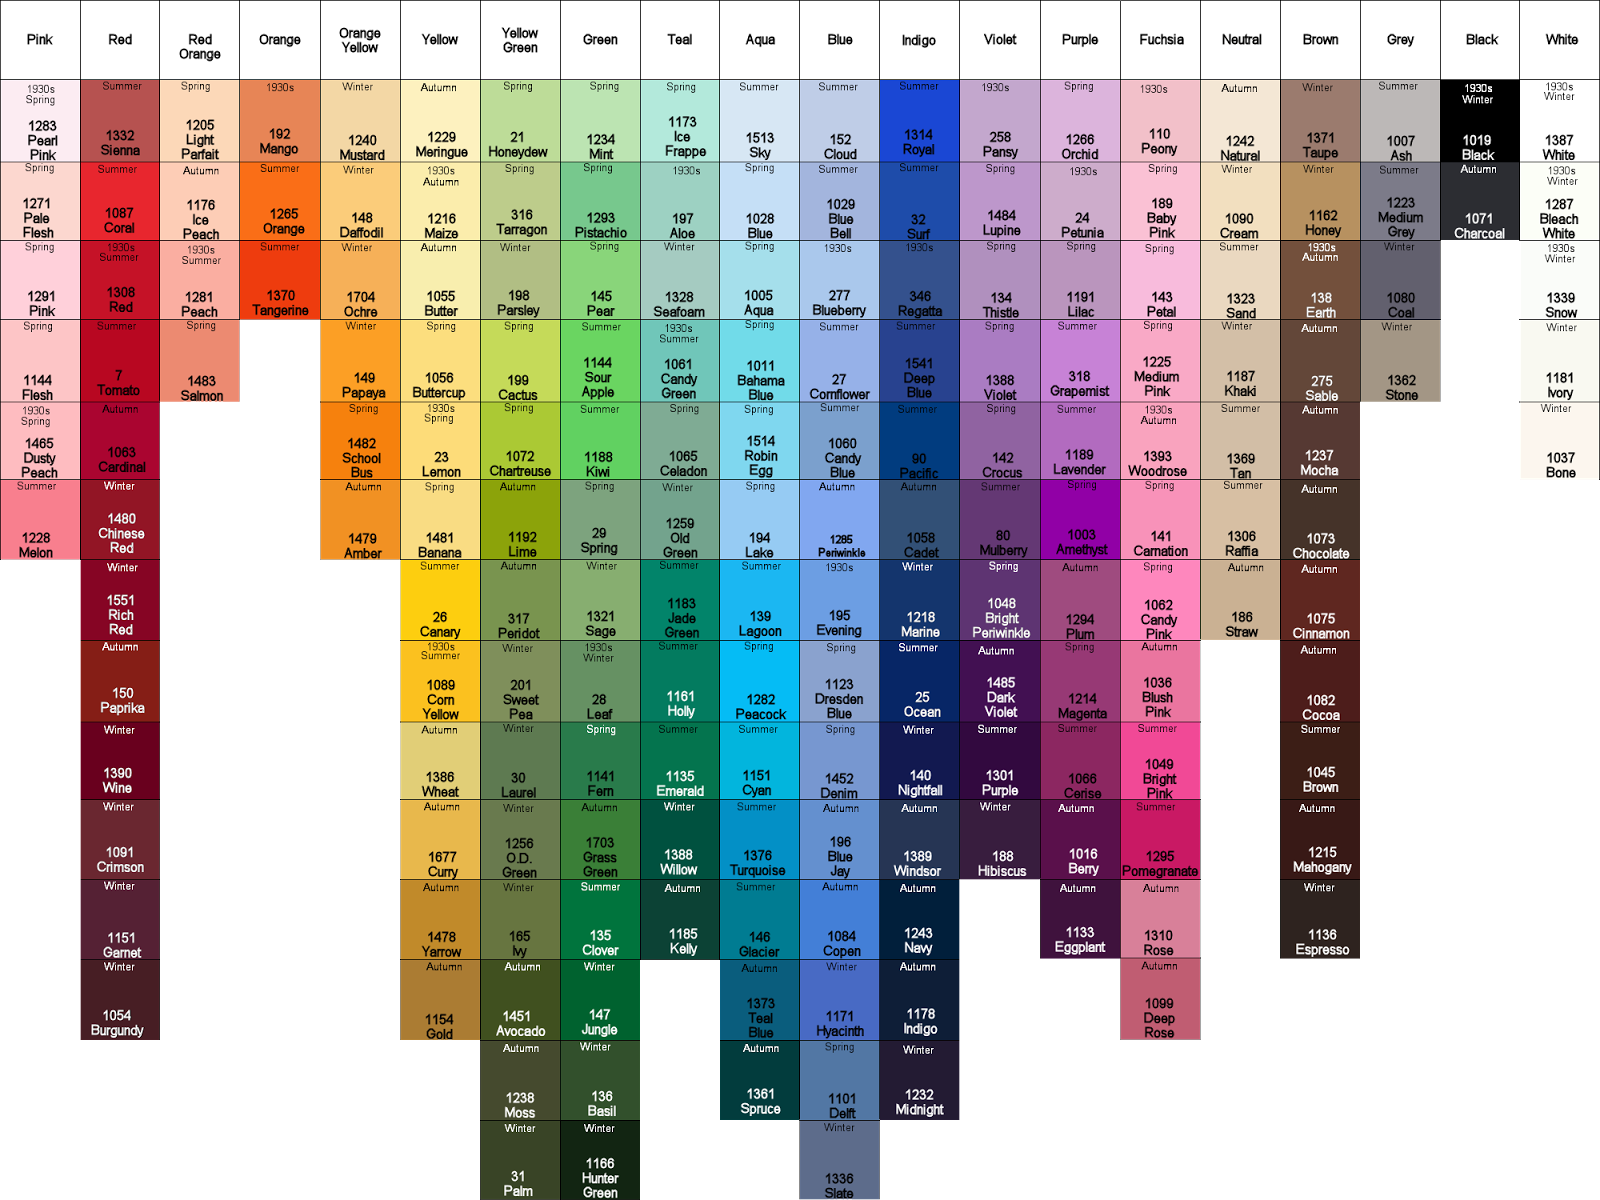 The feisty quilter color guides kona cotton solids nvjuhfo Images